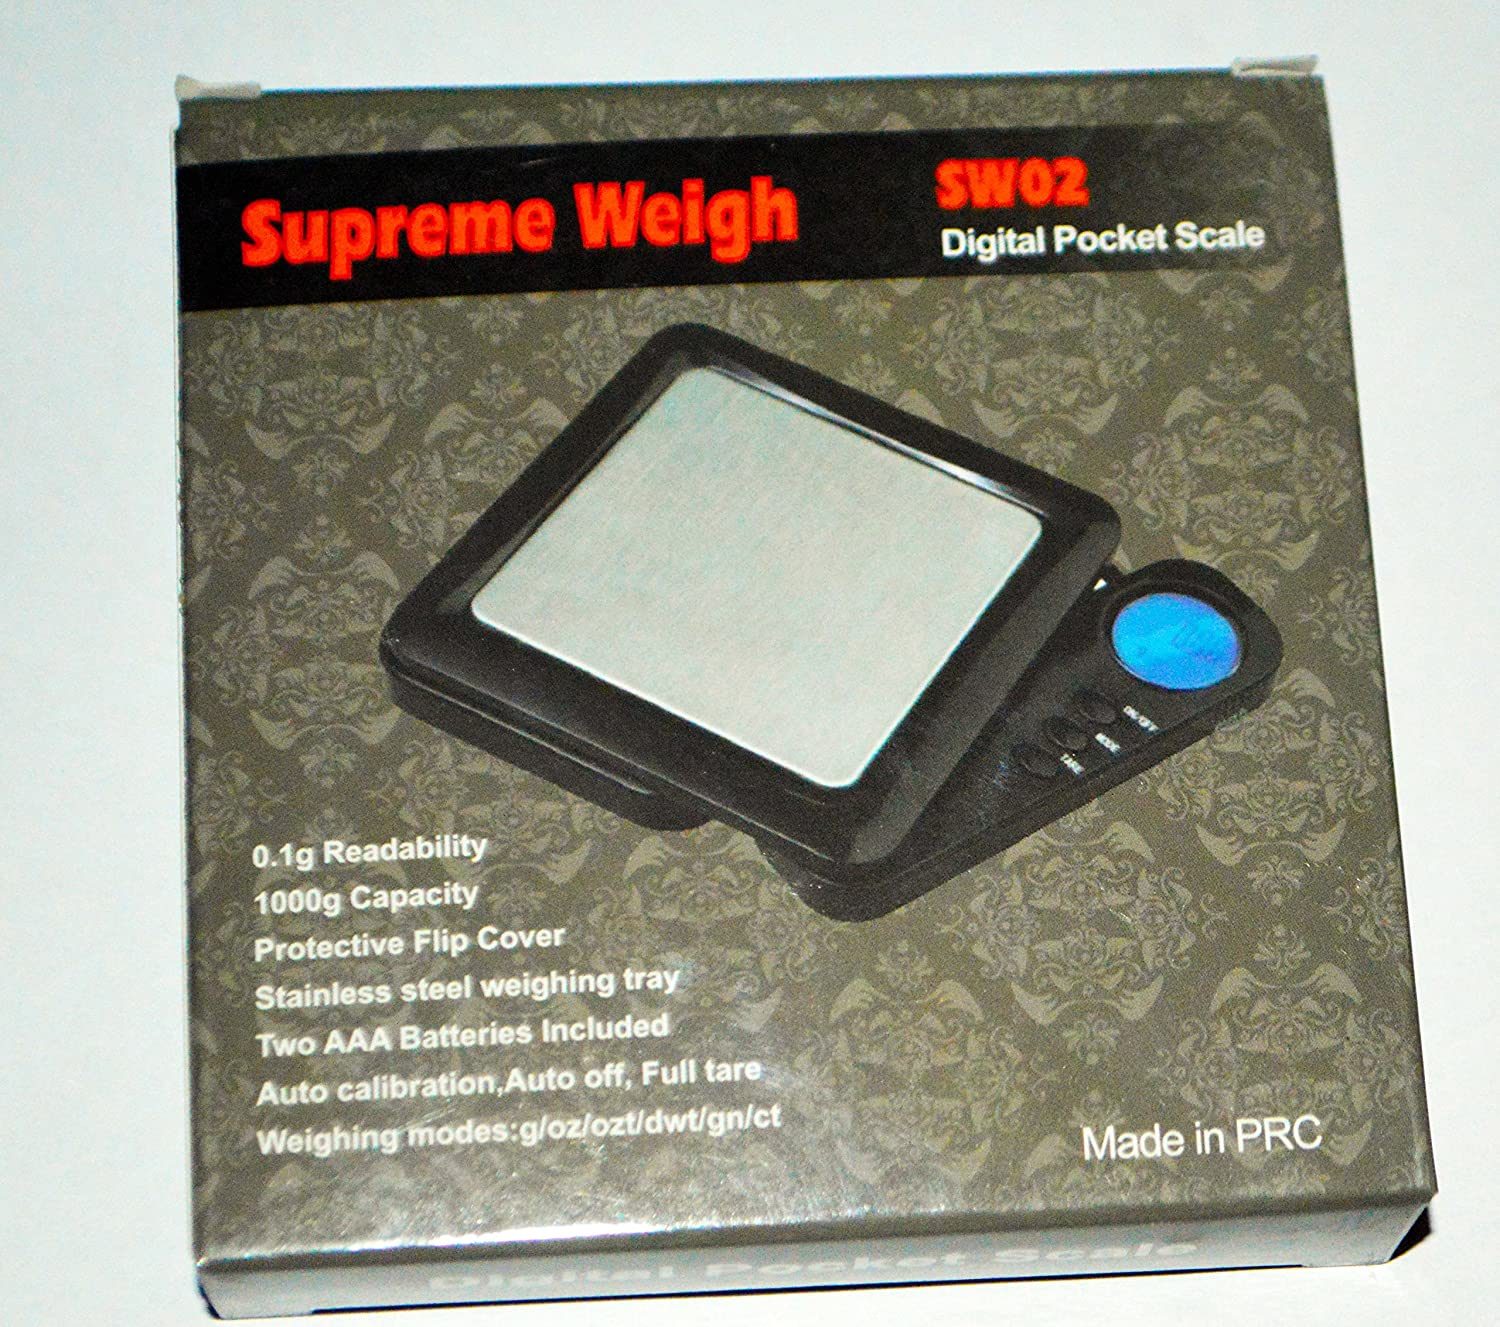 Amazon.com : Supreme Weigh SW02 Digital Pocket Scale 1000g Capacity Stainless Steel weighing tray with 0.1g Readability and Auto Calibration Batteries ...